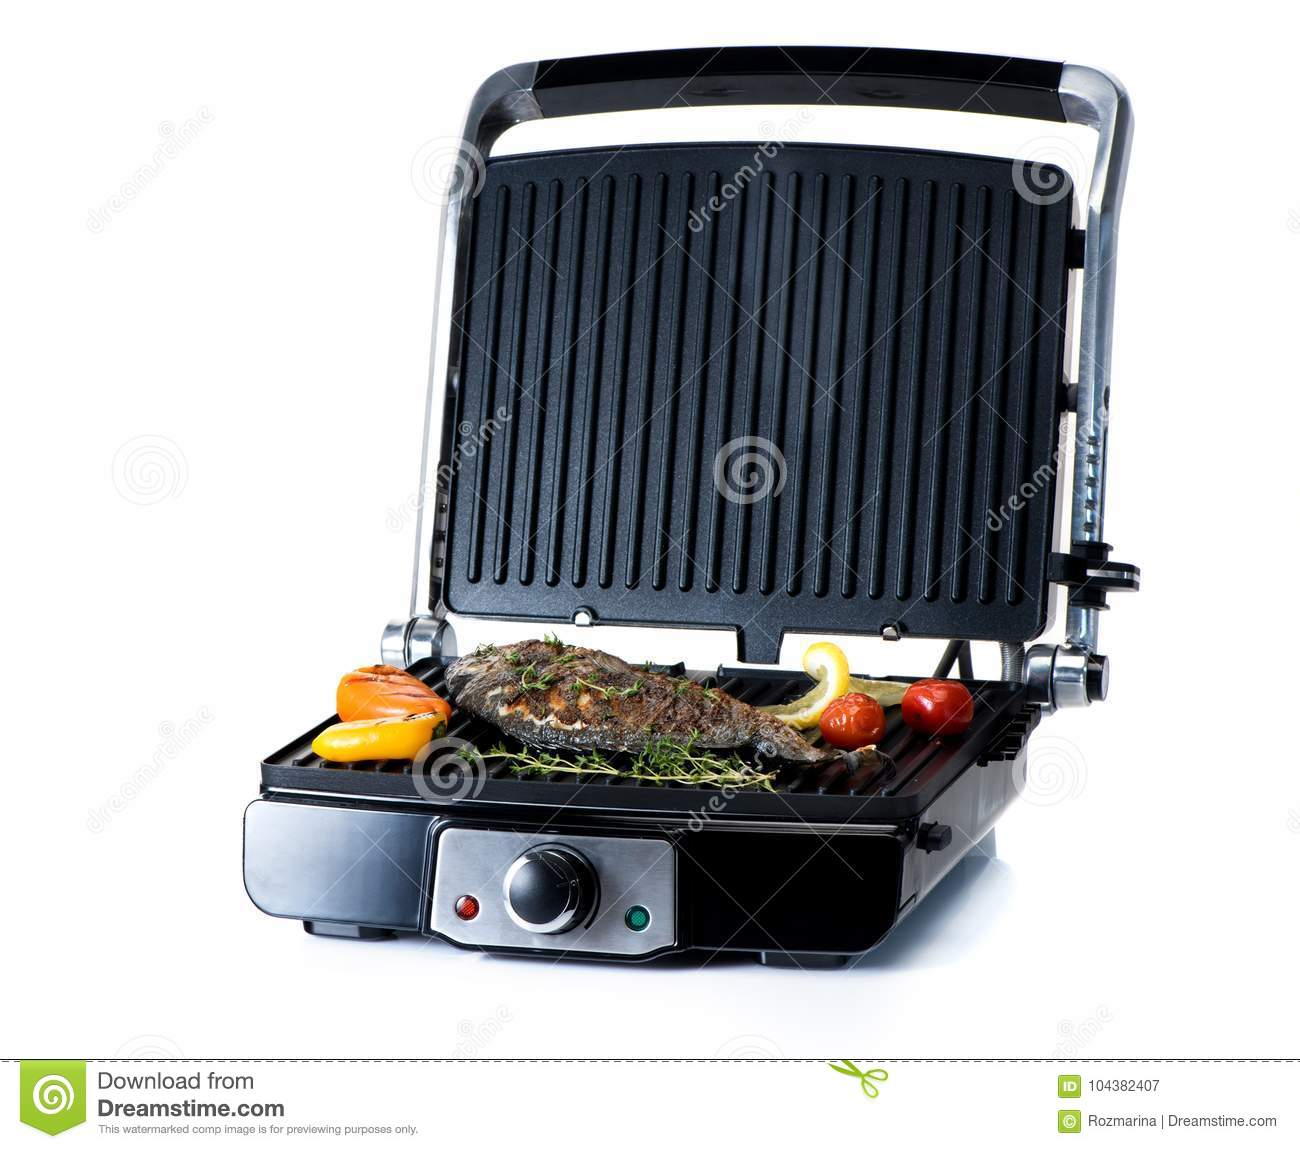 Fish and vegetables on an electric grill